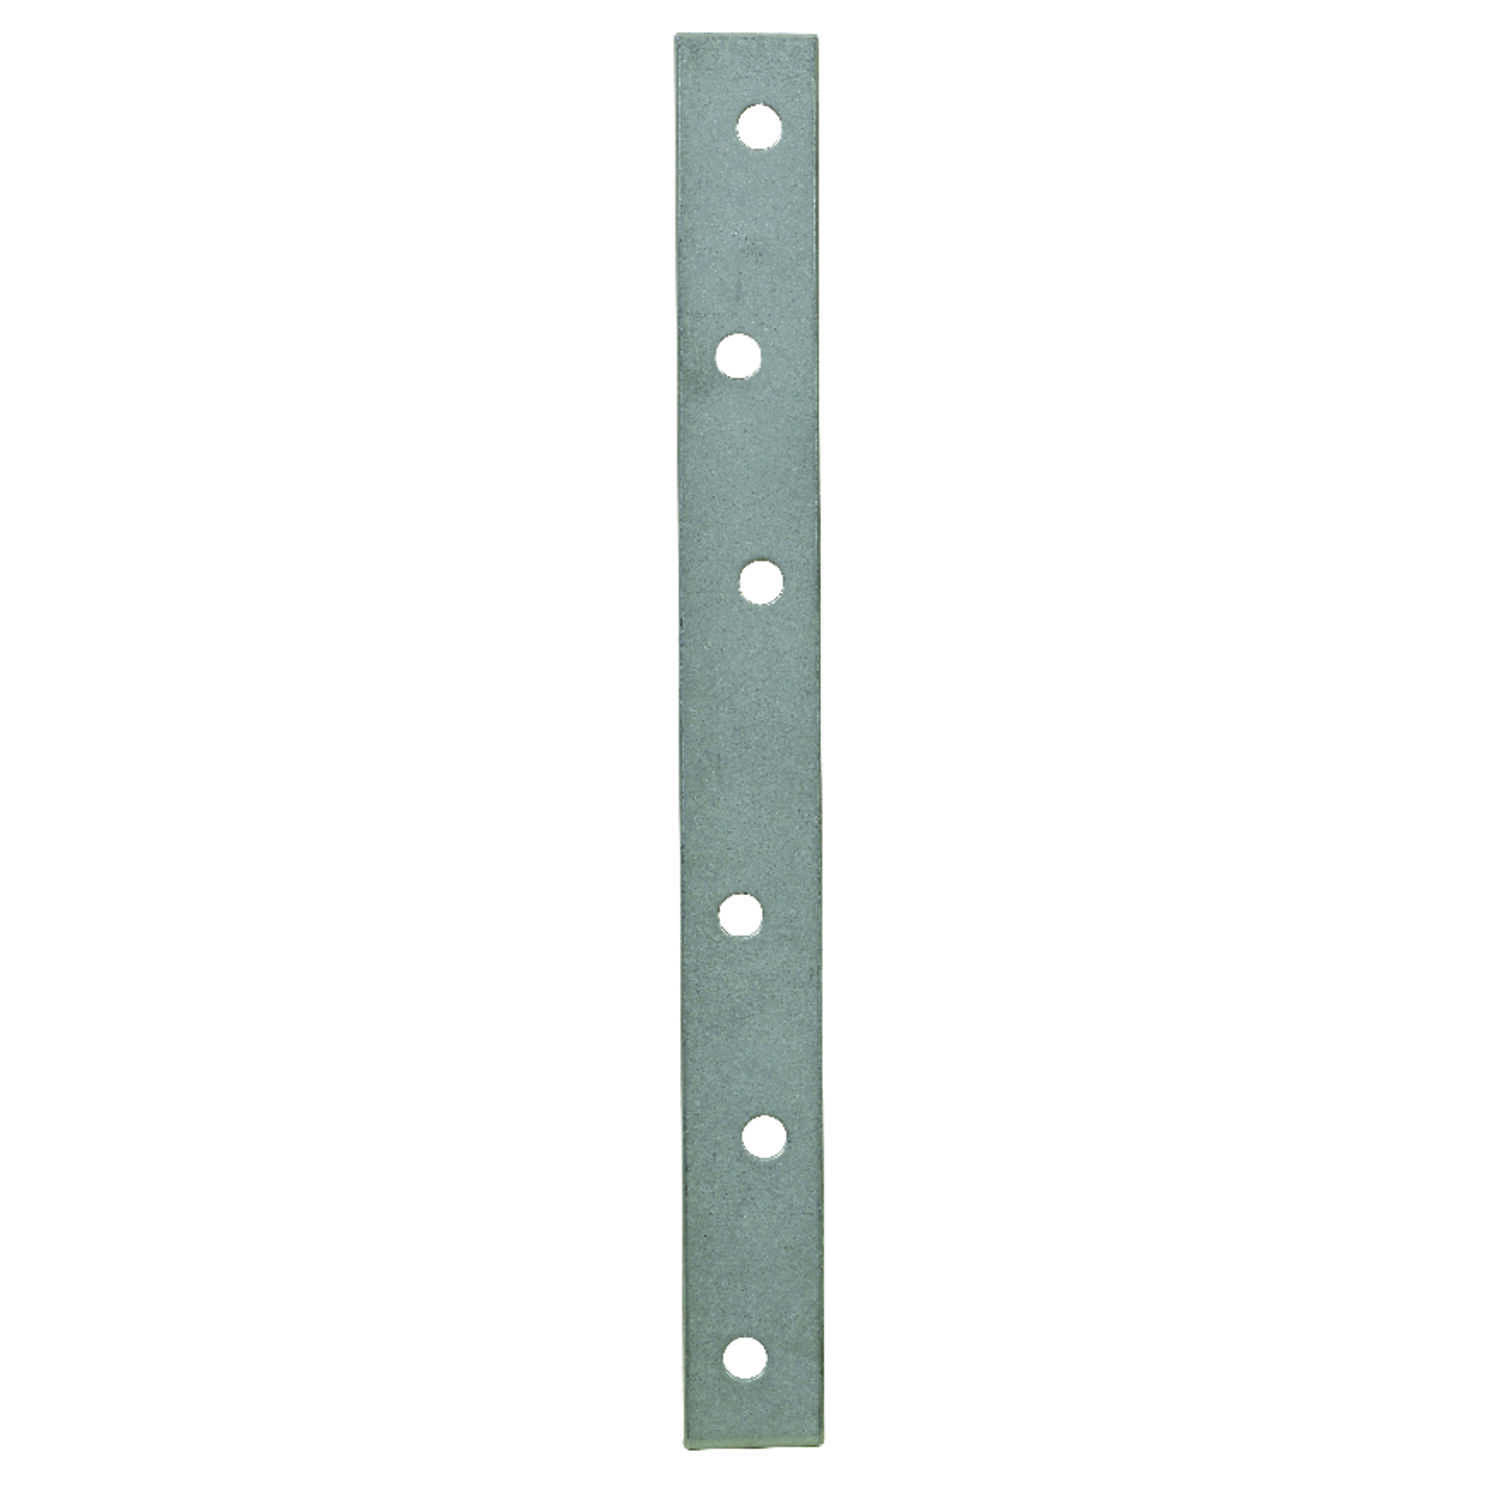 Ace  10 in. H x 1 in. W x .165 in. L Galvanized  Steel  Mending Brace